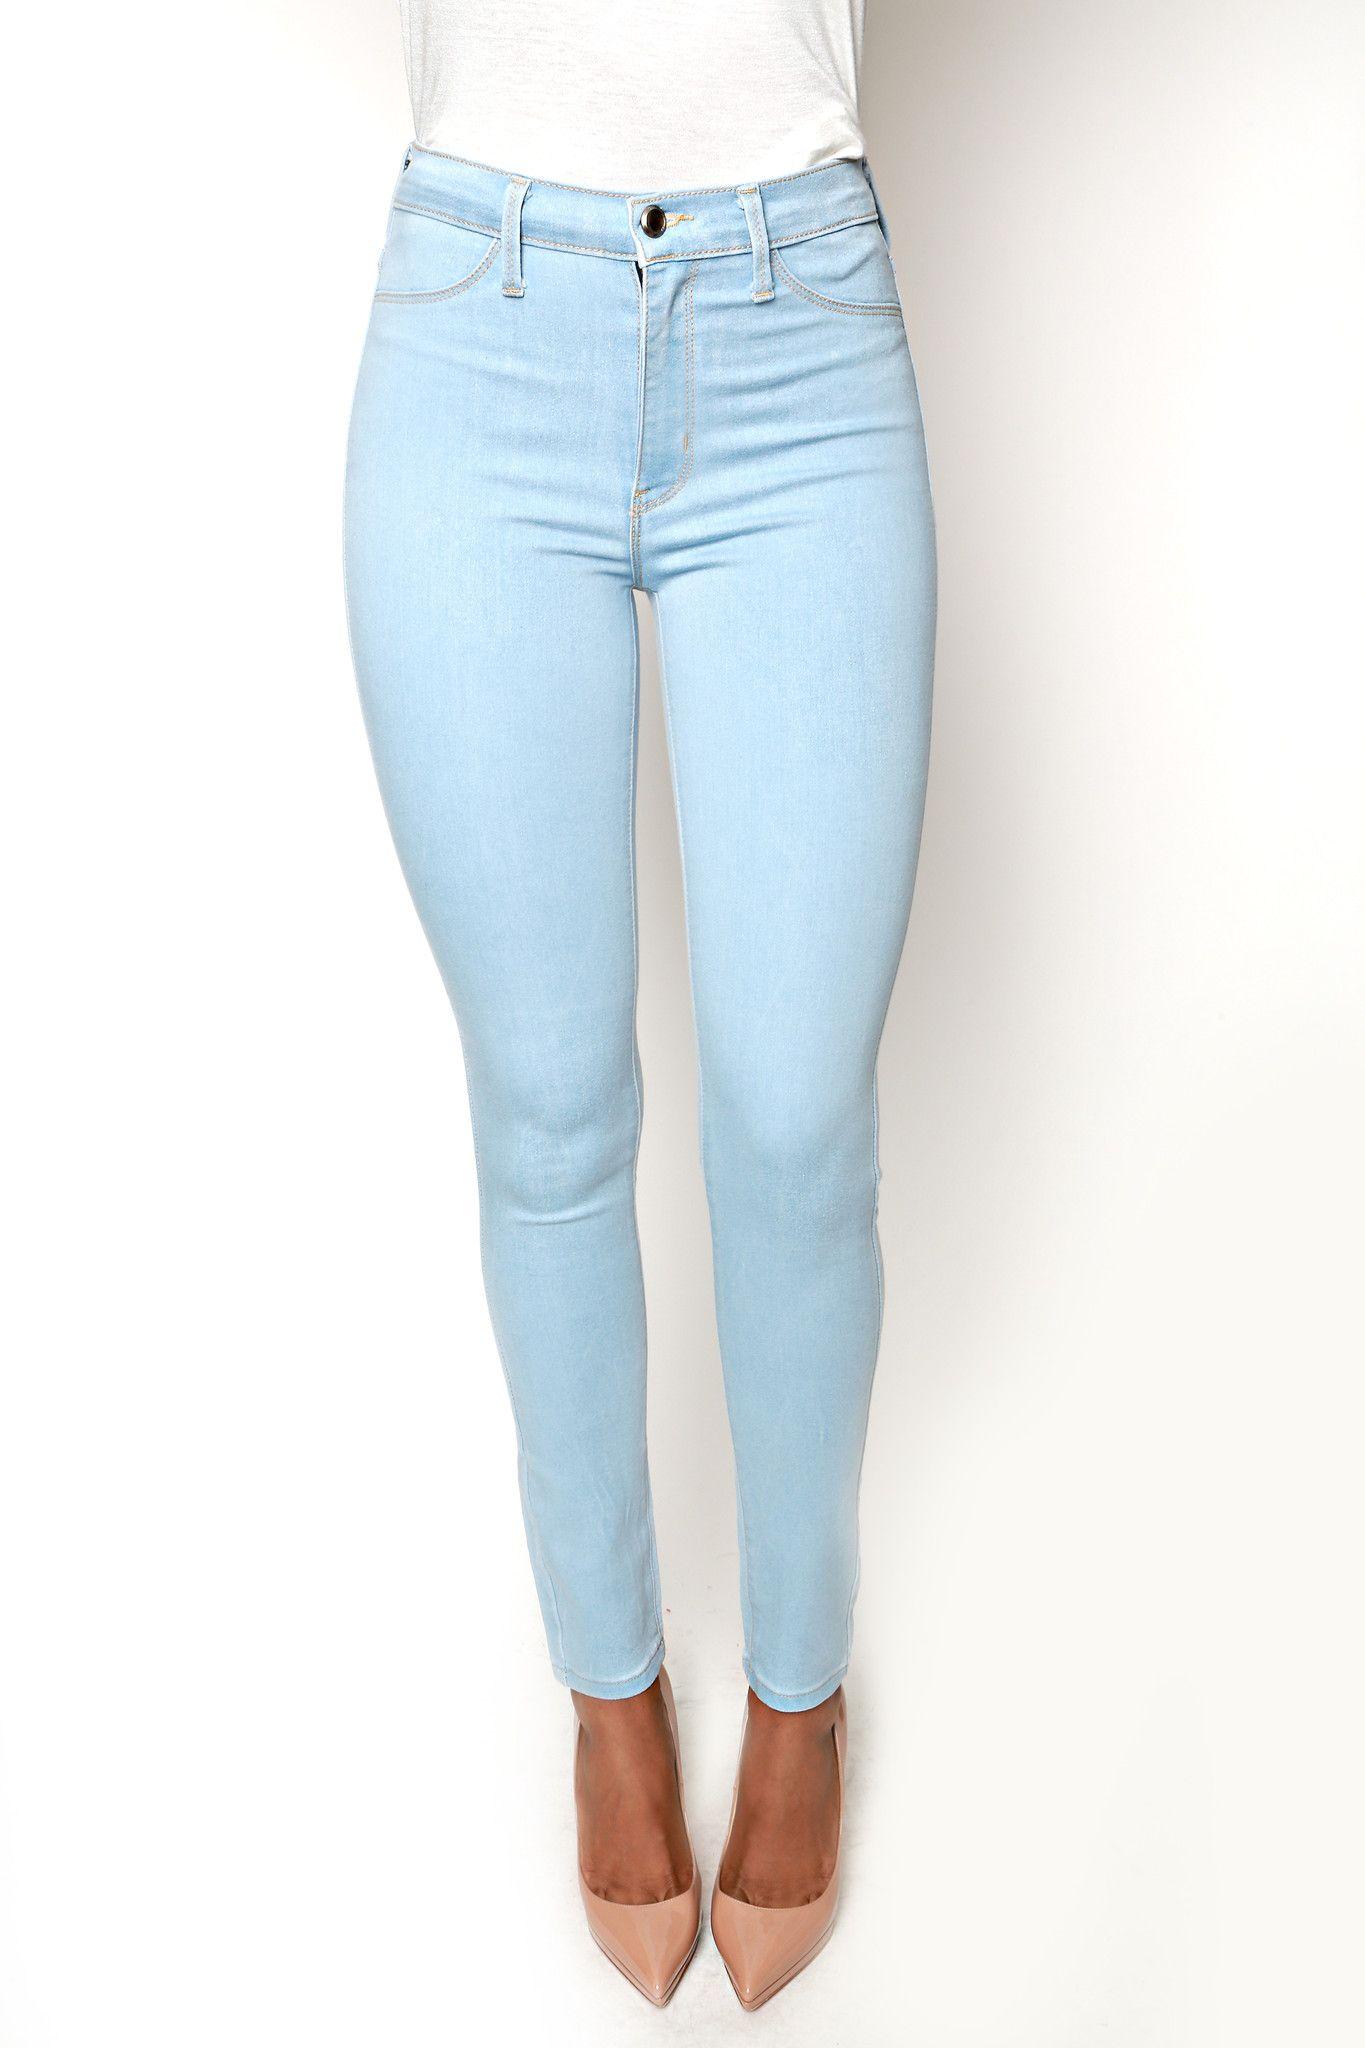 8b2cefb457b These SWANK Blue Sky Jeans are so comfy and so chic. They feature an  incredible amount of stretch